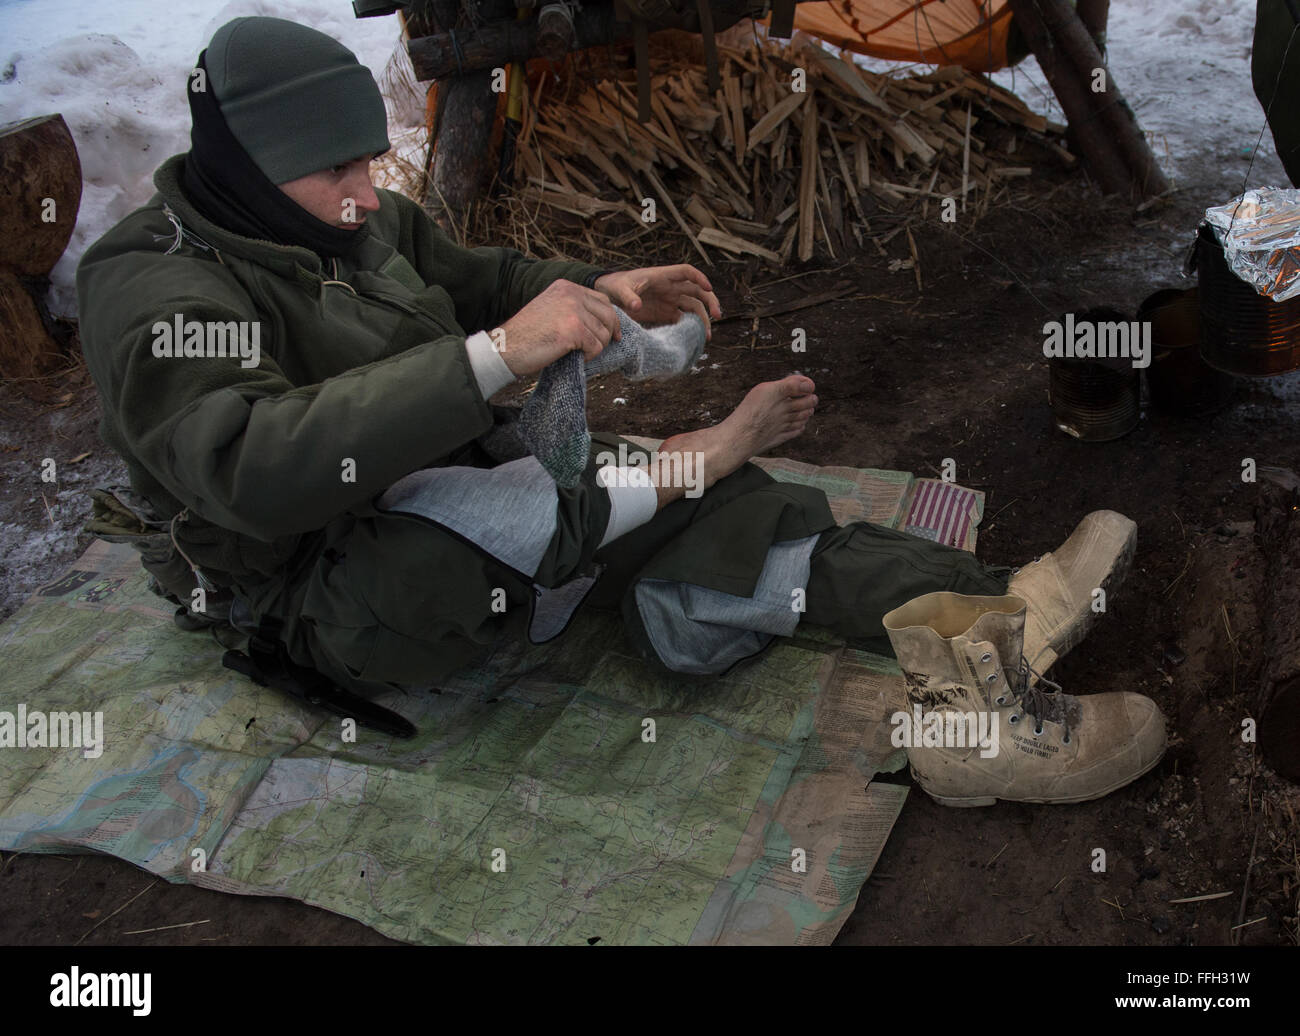 U.S. Air Force 1st Lt. Evan Wells, 37th Helicopter Squadron, UH-1N Huey pilot, changes socks during arctic survival - Stock Image